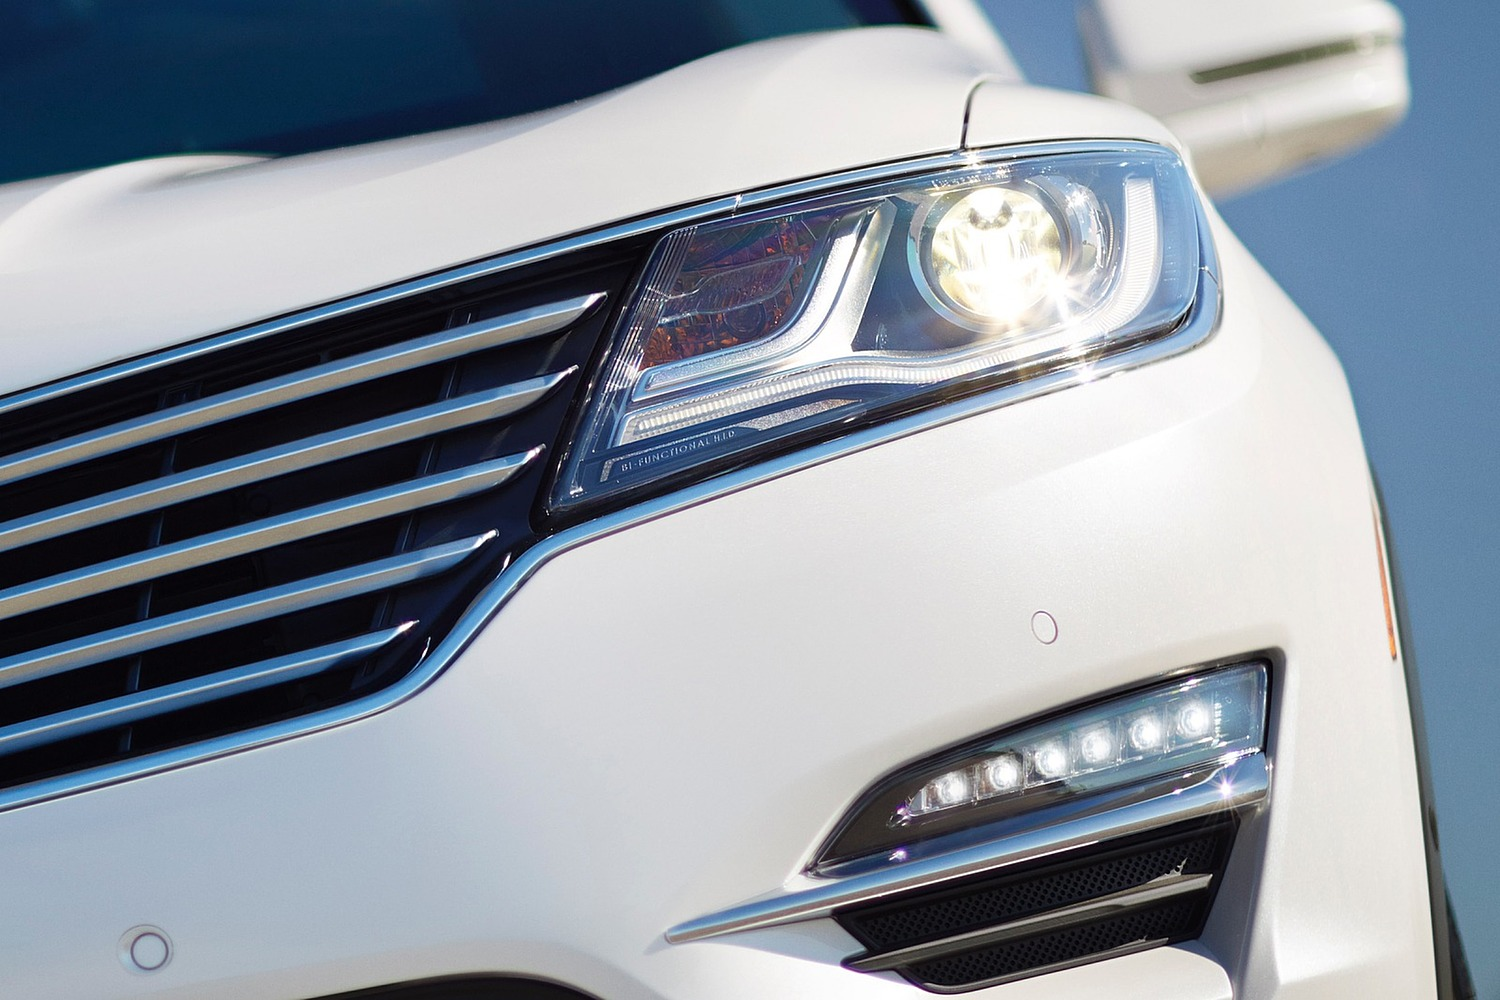 Lincoln MKC Select 4dr SUV Exterior Detail (2016 model year shown)